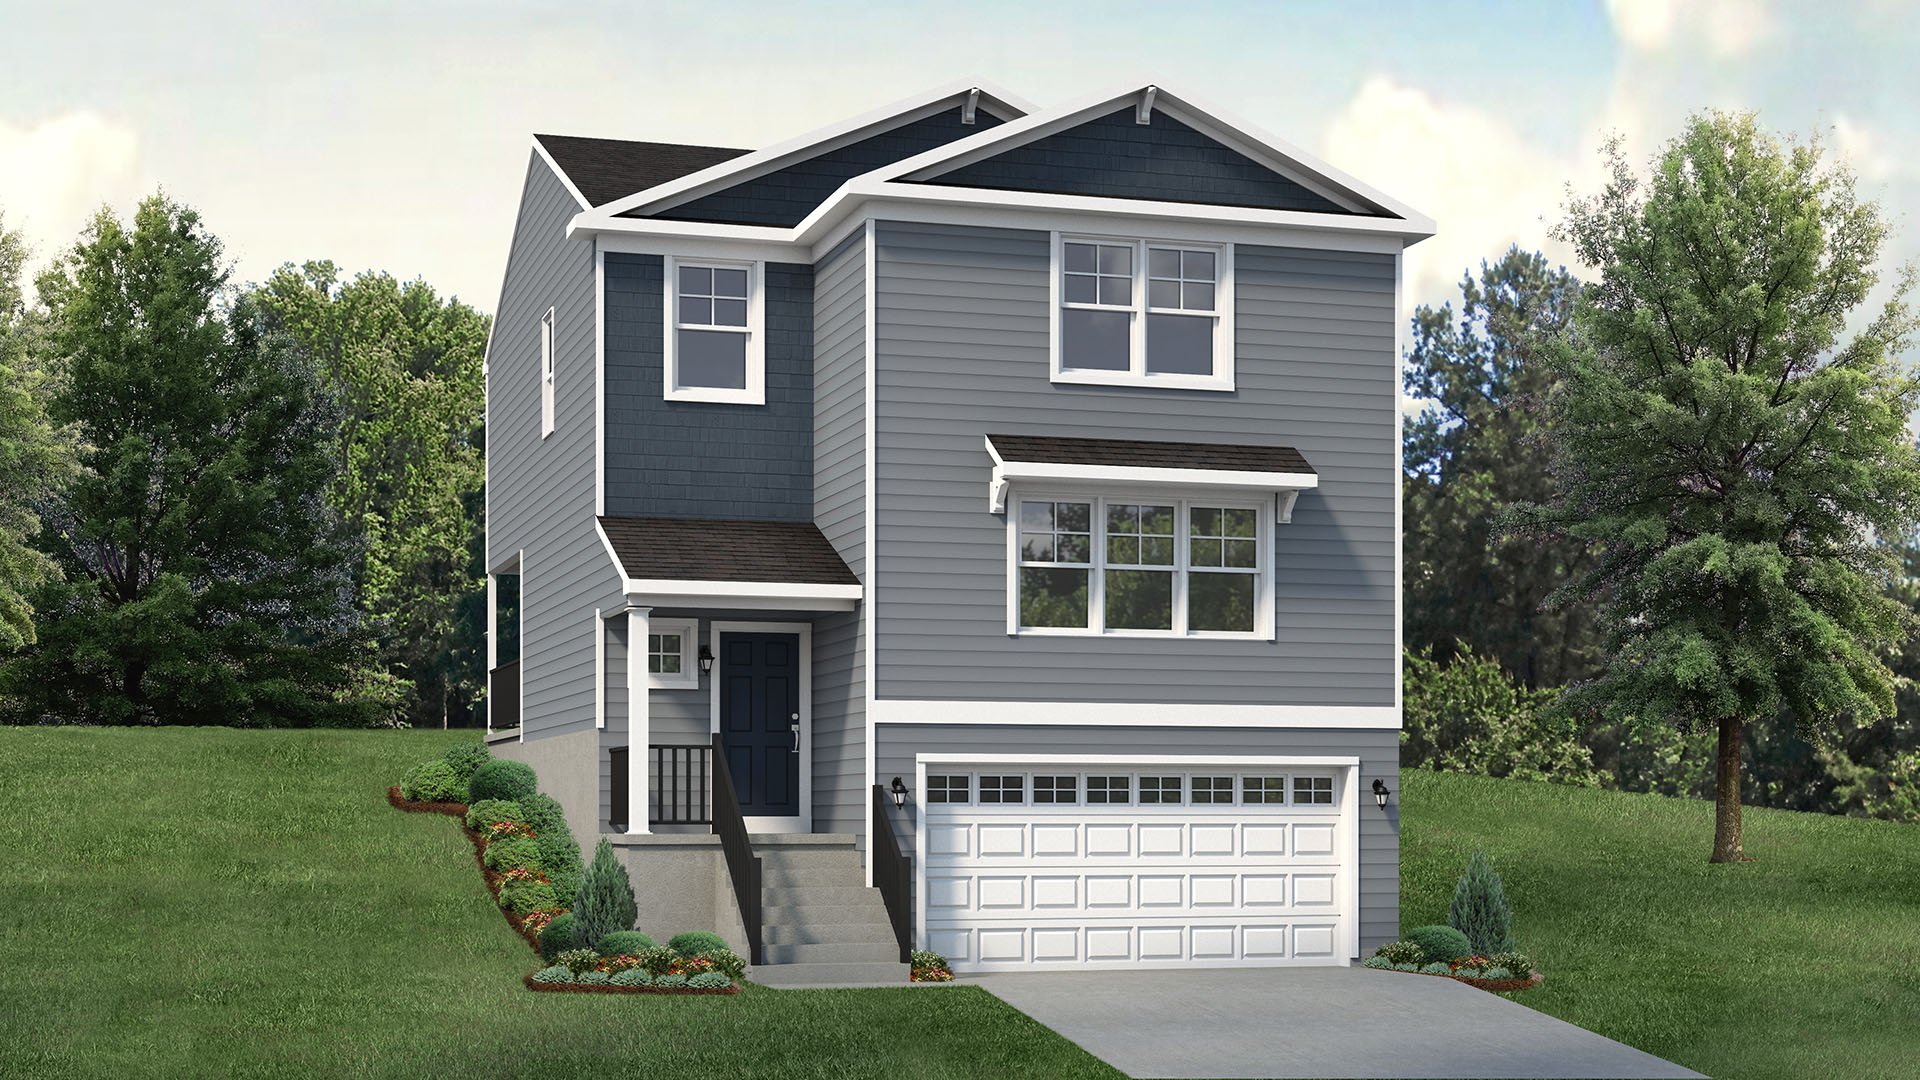 Three New Streamline Series Floor Plans Now Selling at Steeplechase